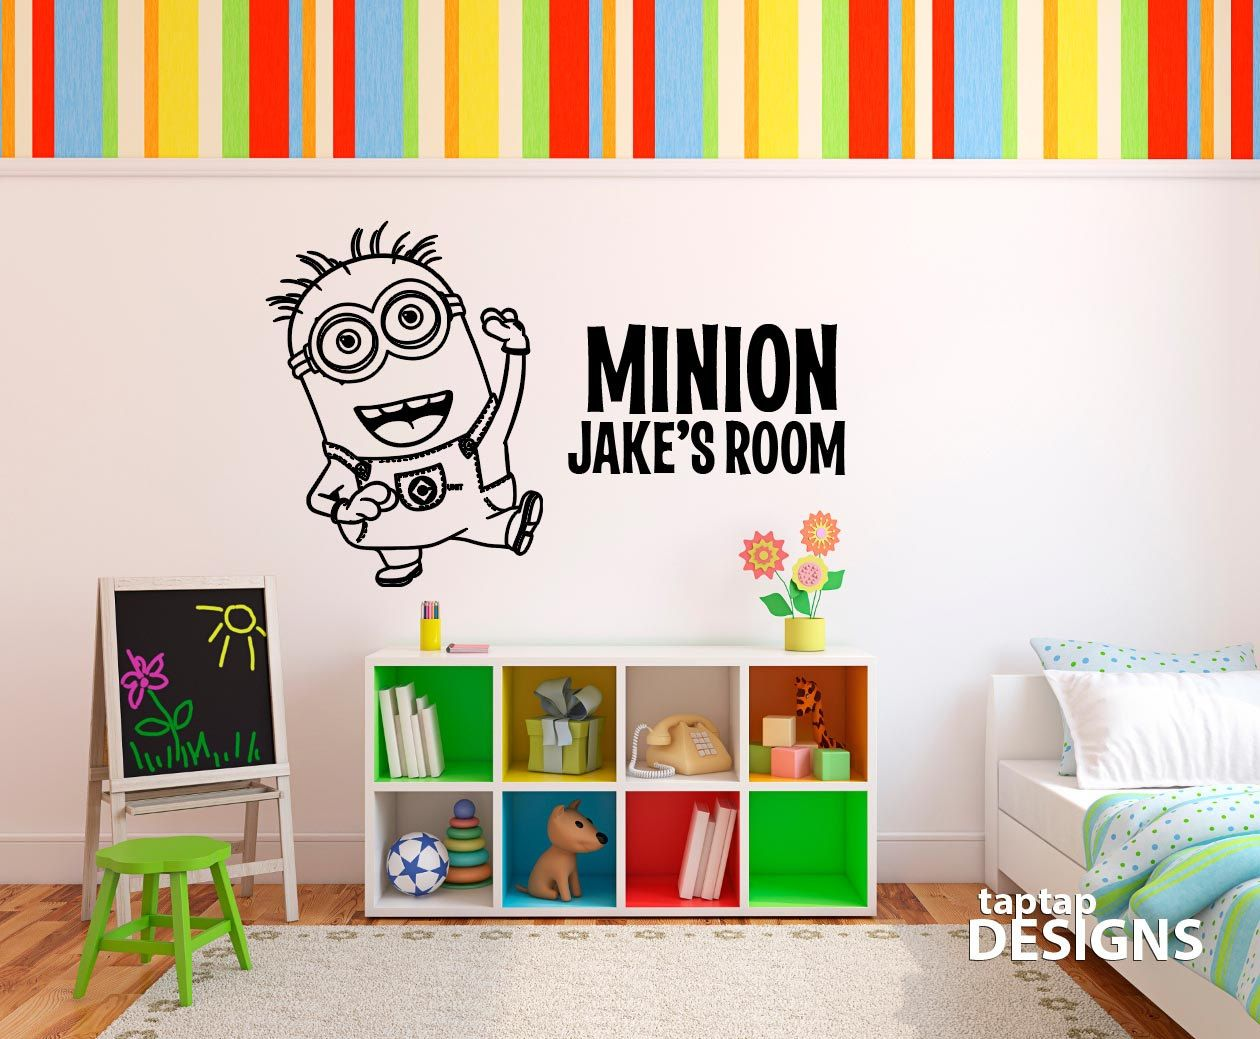 Despicable me minion wall mural decal sticker by taptapdesigns despicable me minion wall mural decal sticker by taptapdesigns 1199 amipublicfo Images